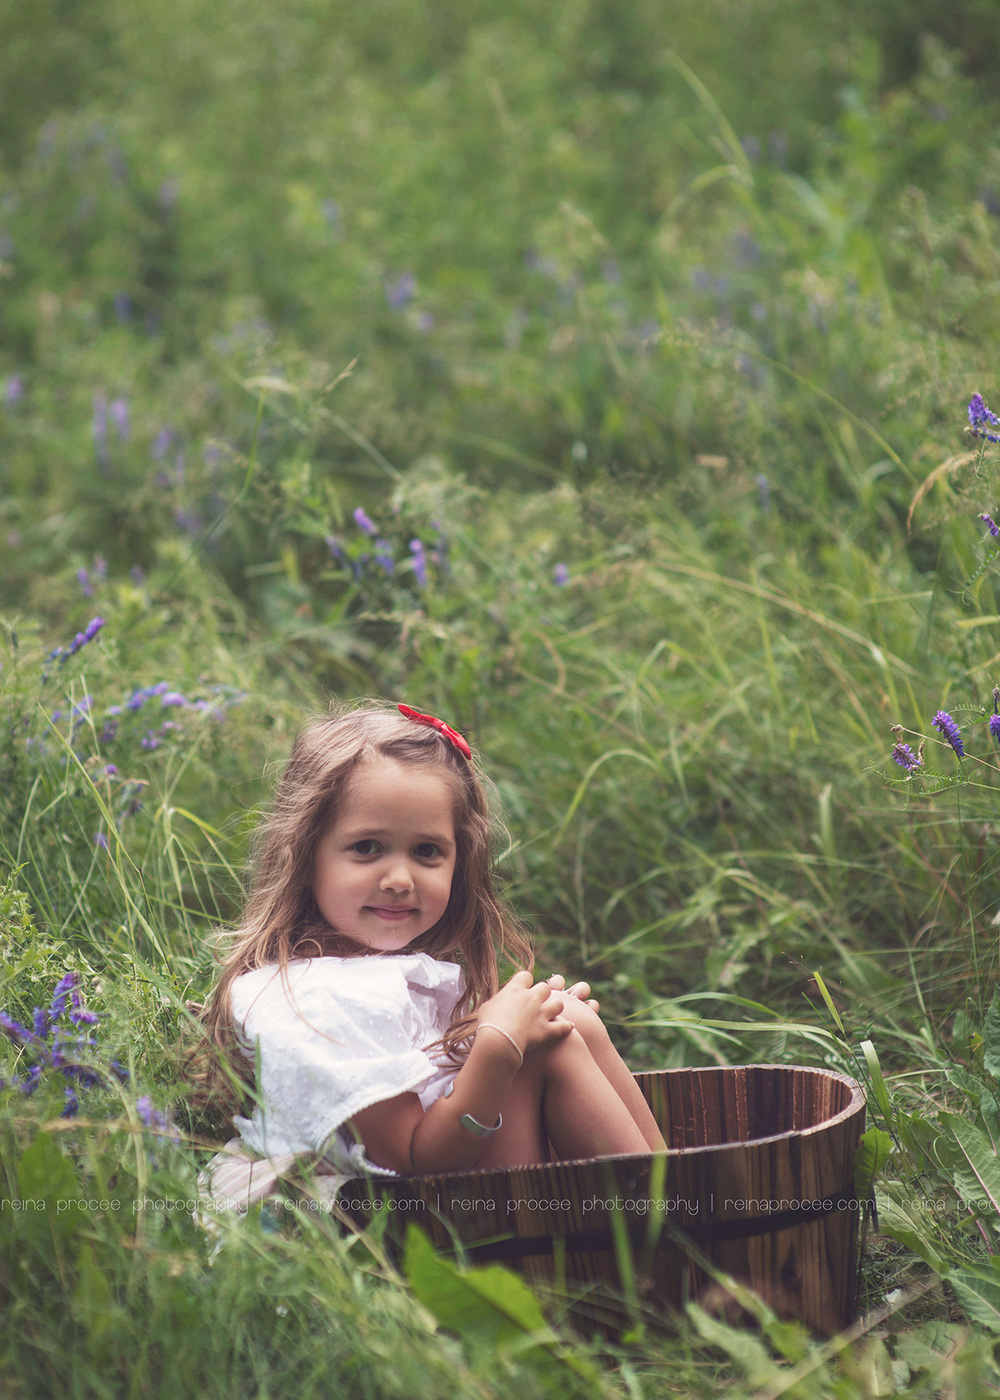 little girl siting in a bucket smiling at the camera